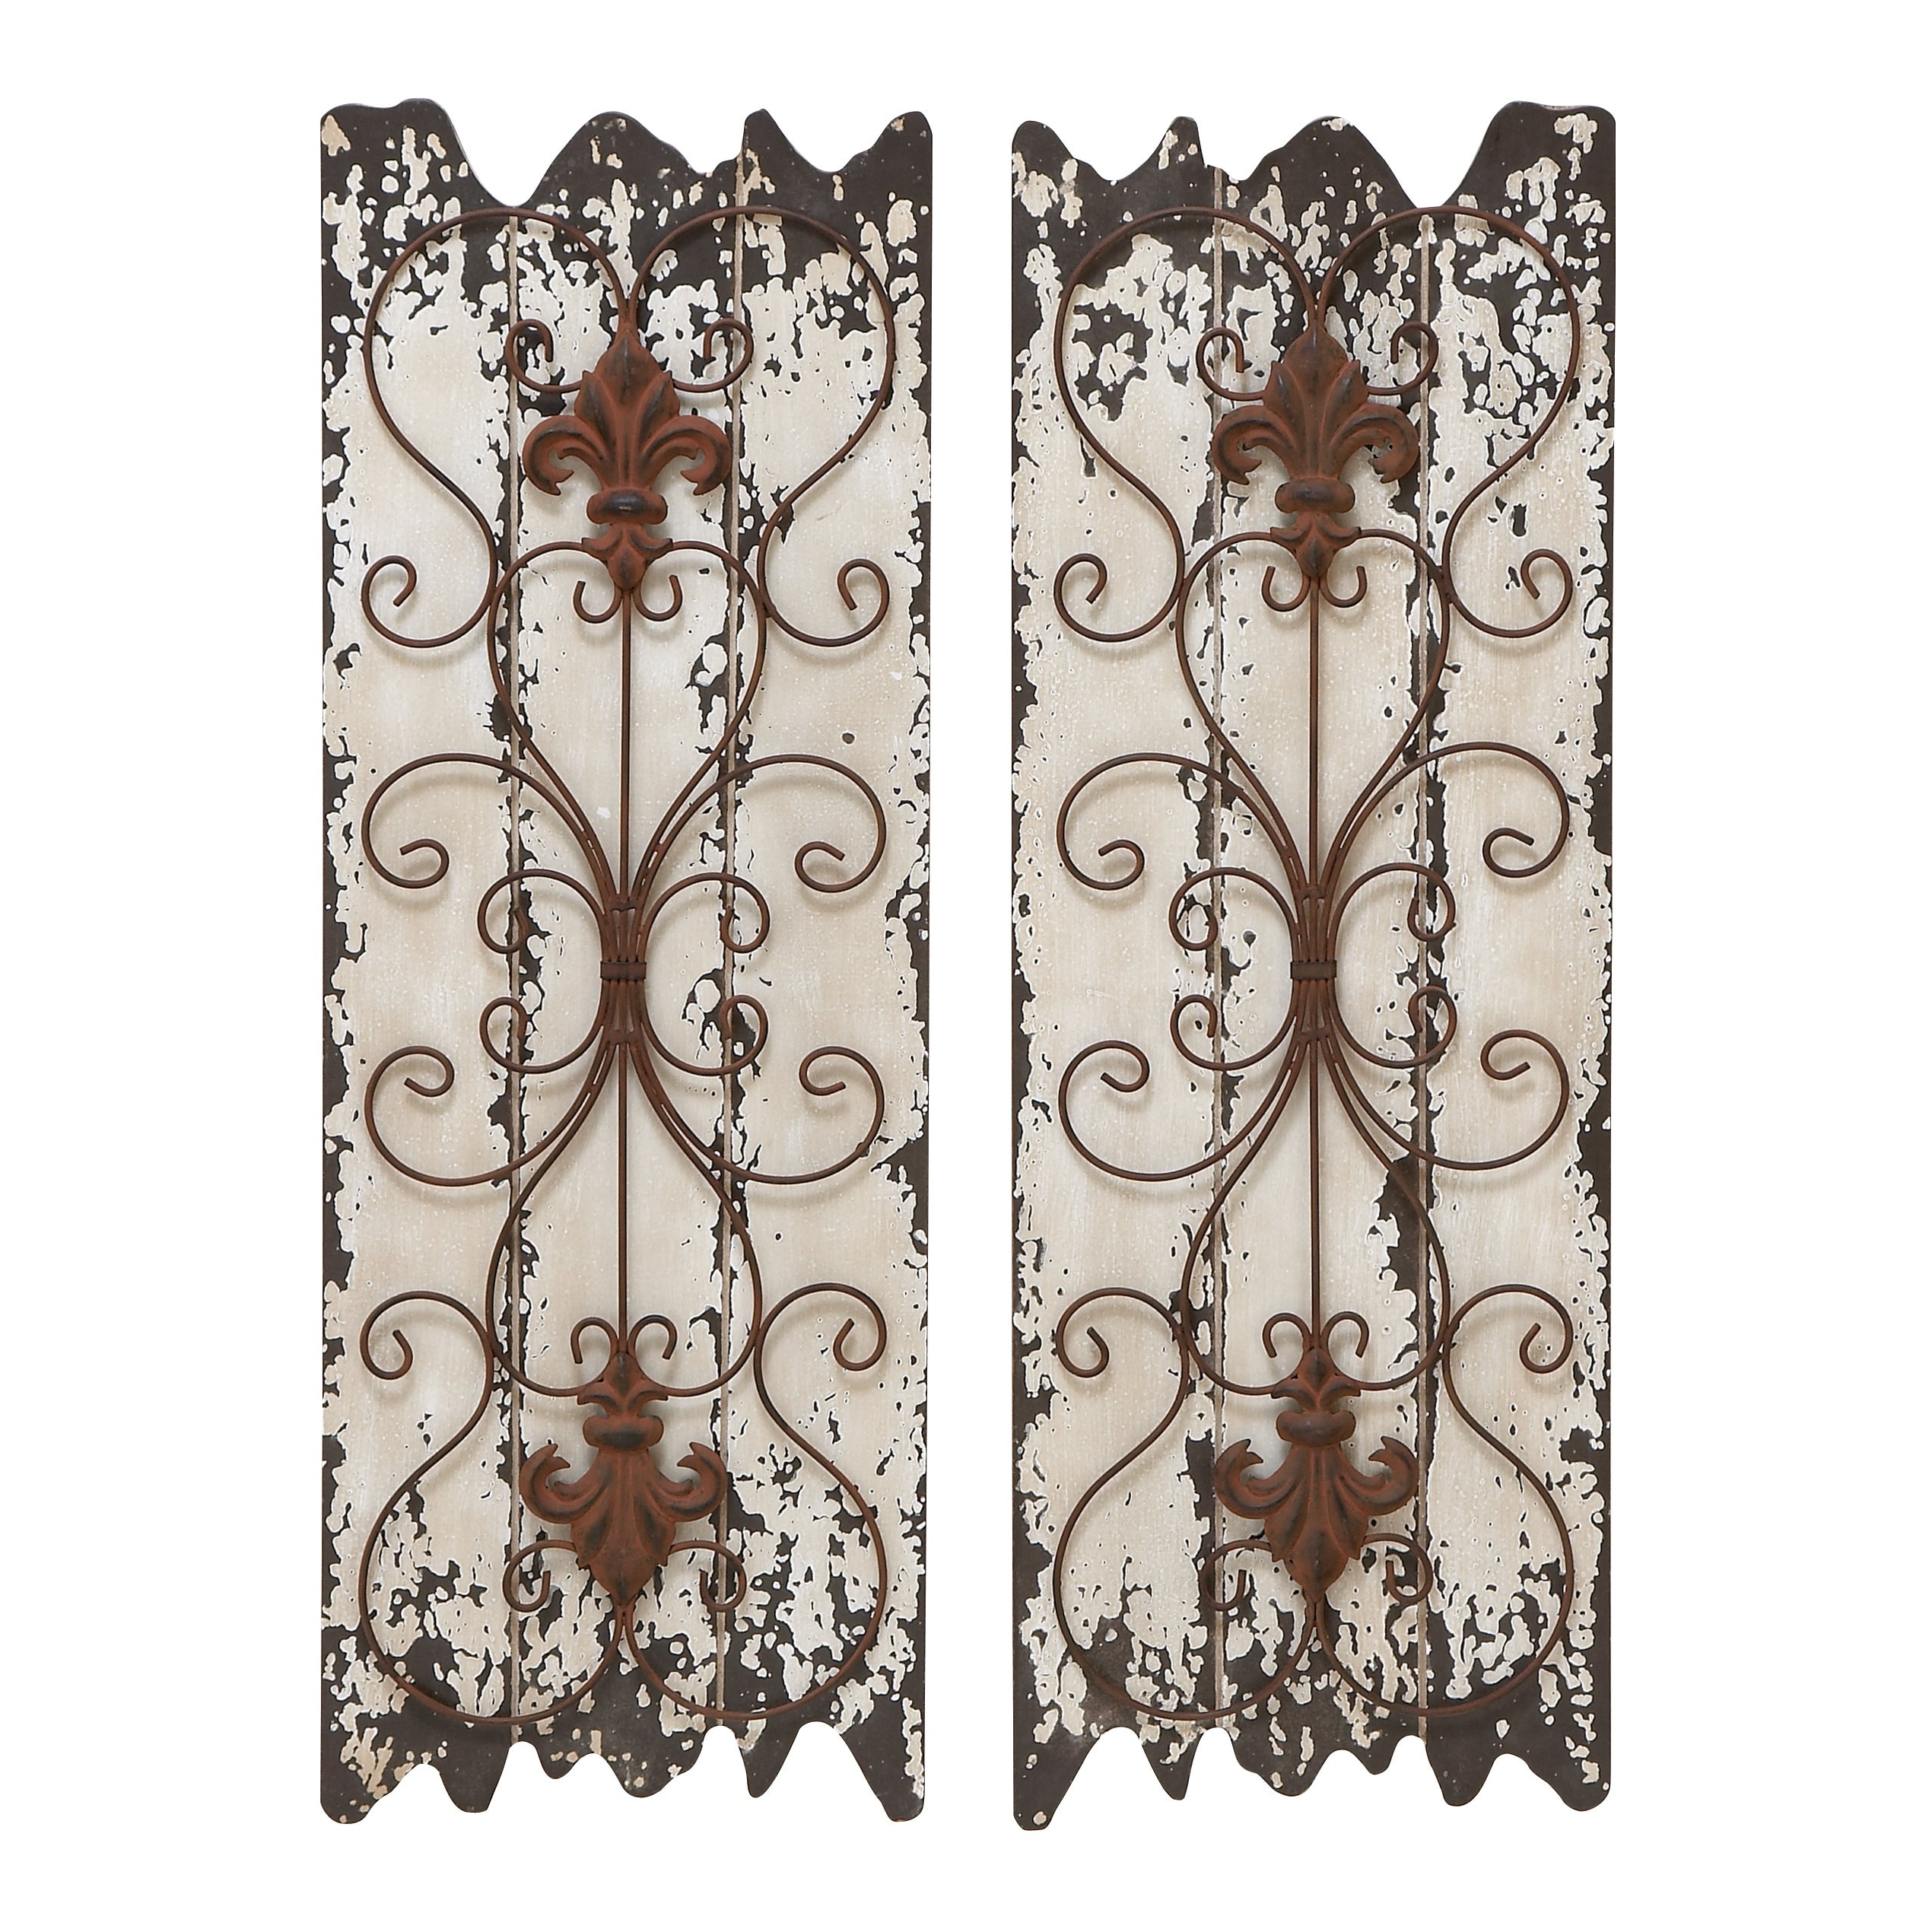 Brown Wood And Metal Wall Decor Within Most Recently Released Shop Wood And Metal Wall Decor Panel (Set Of 2) – White – On Sale (Gallery 6 of 20)